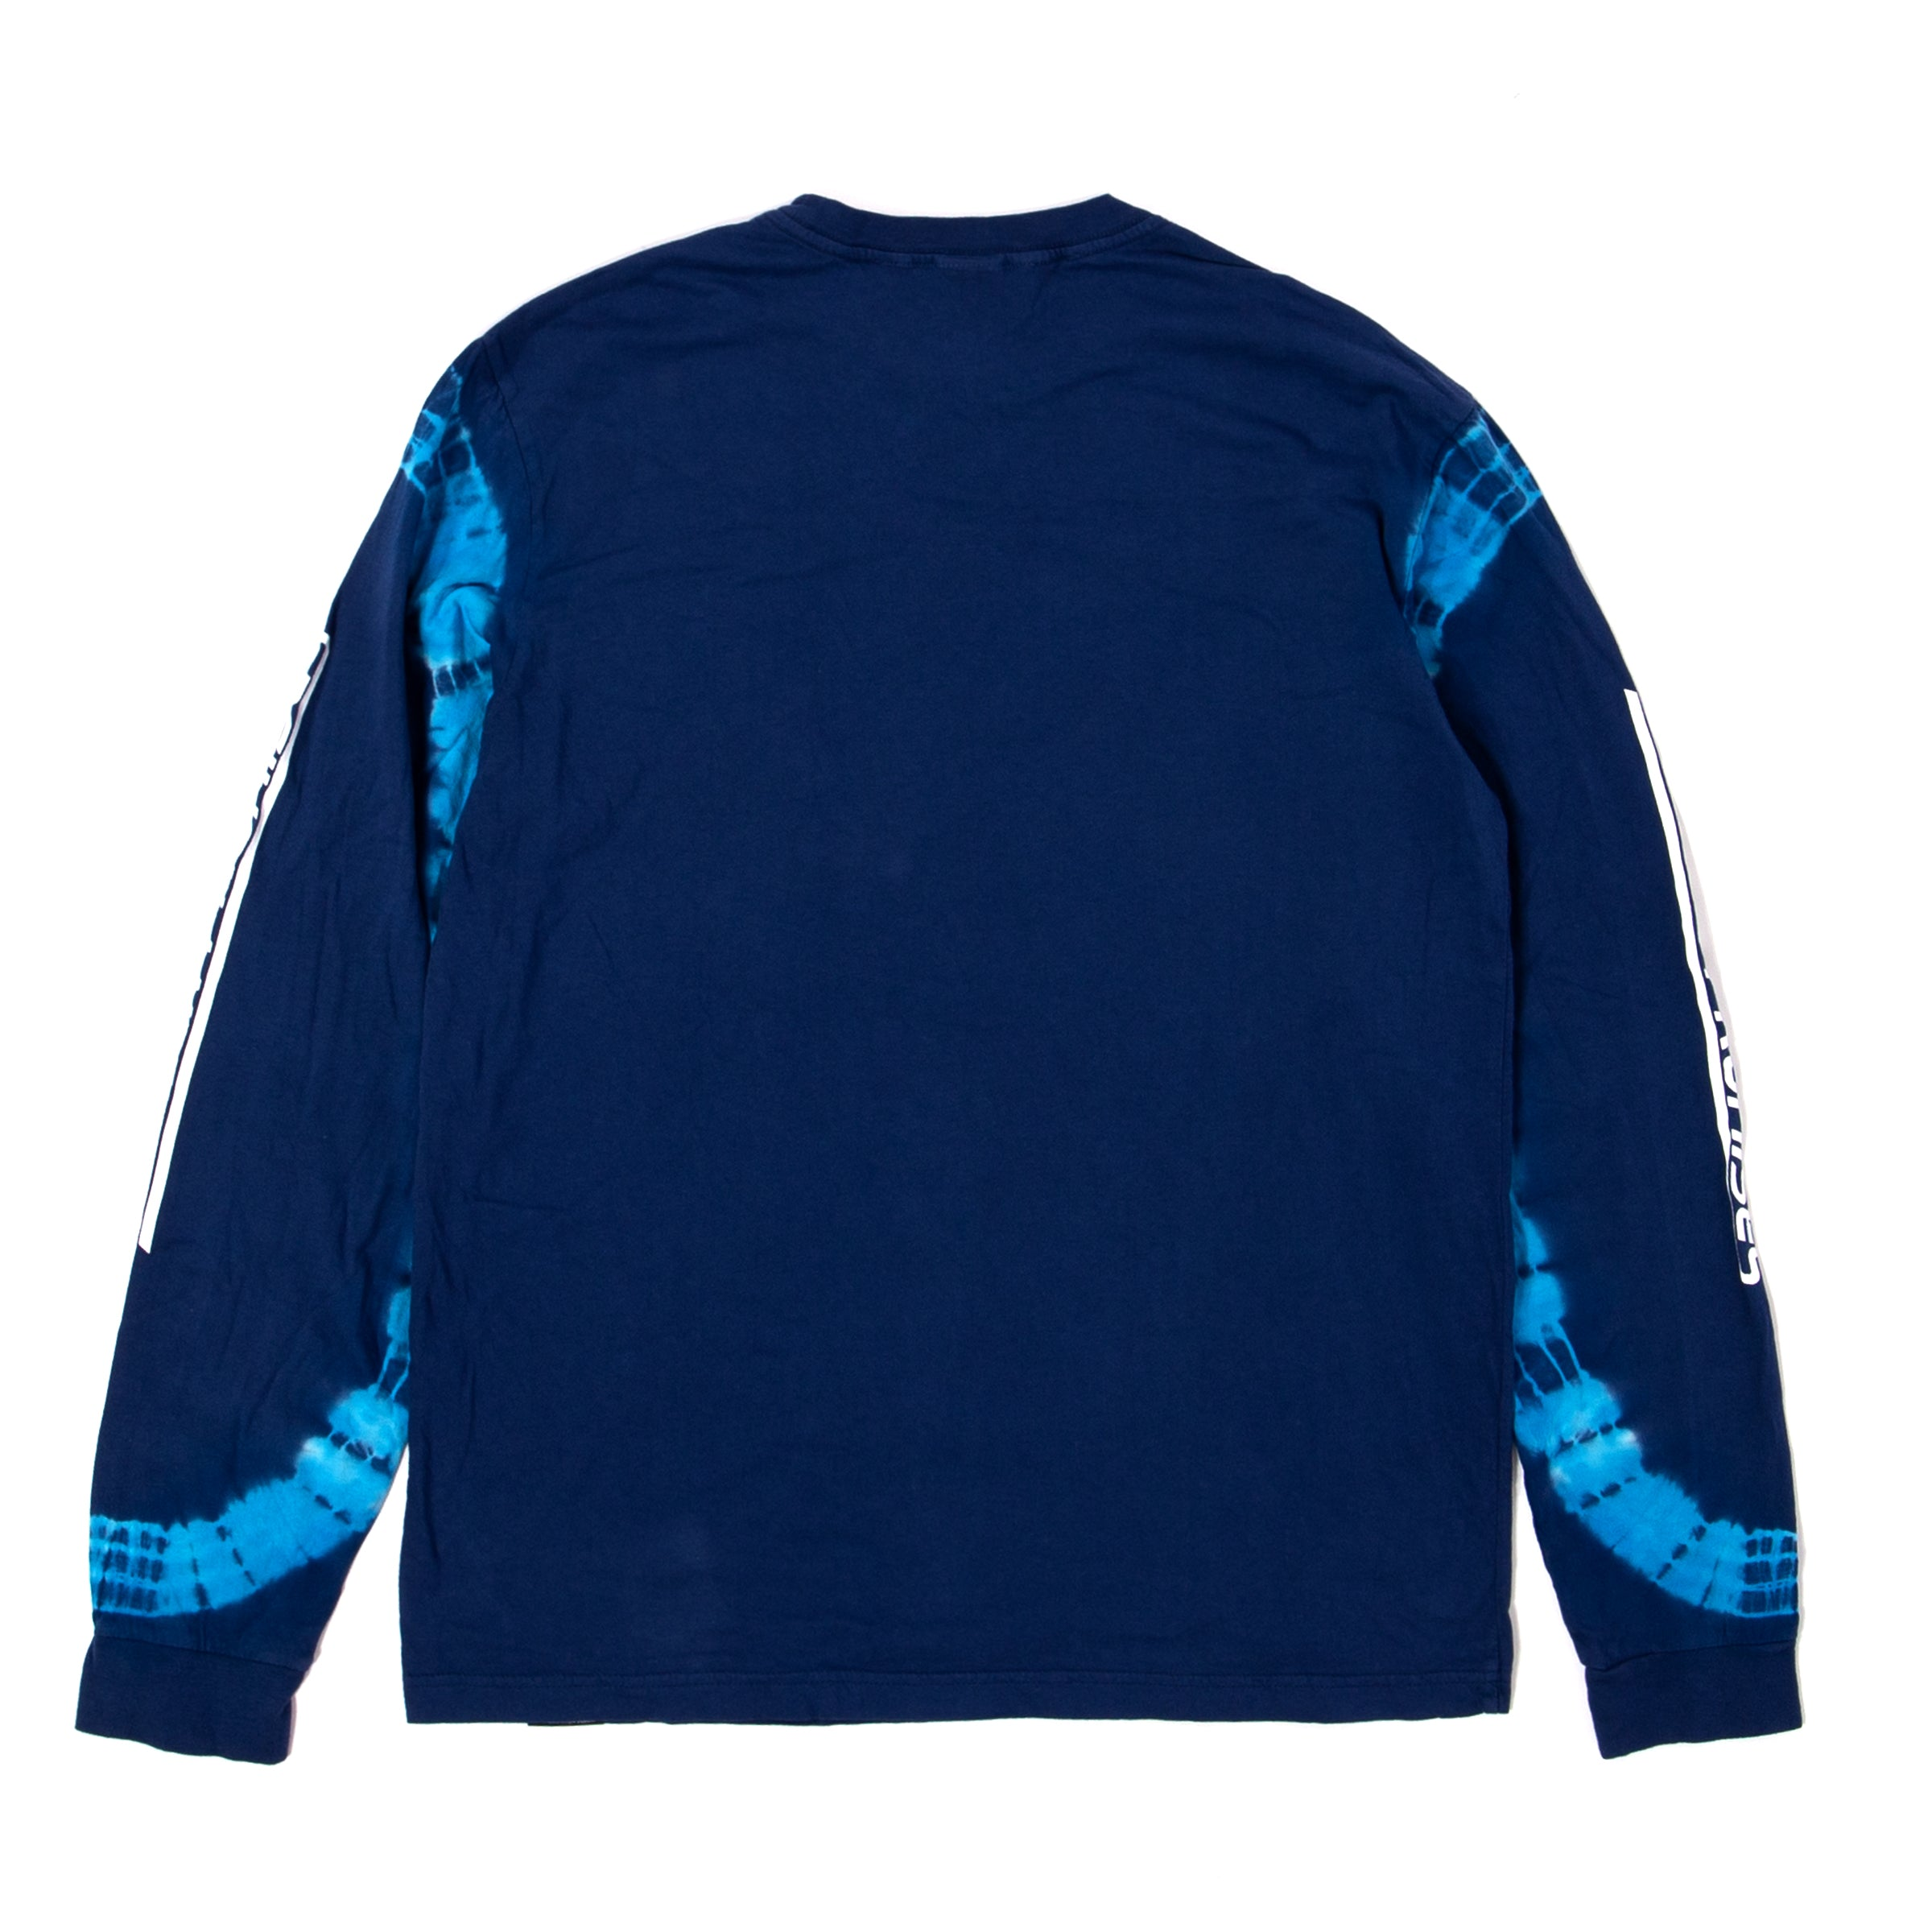 Powerglide L/S Navy